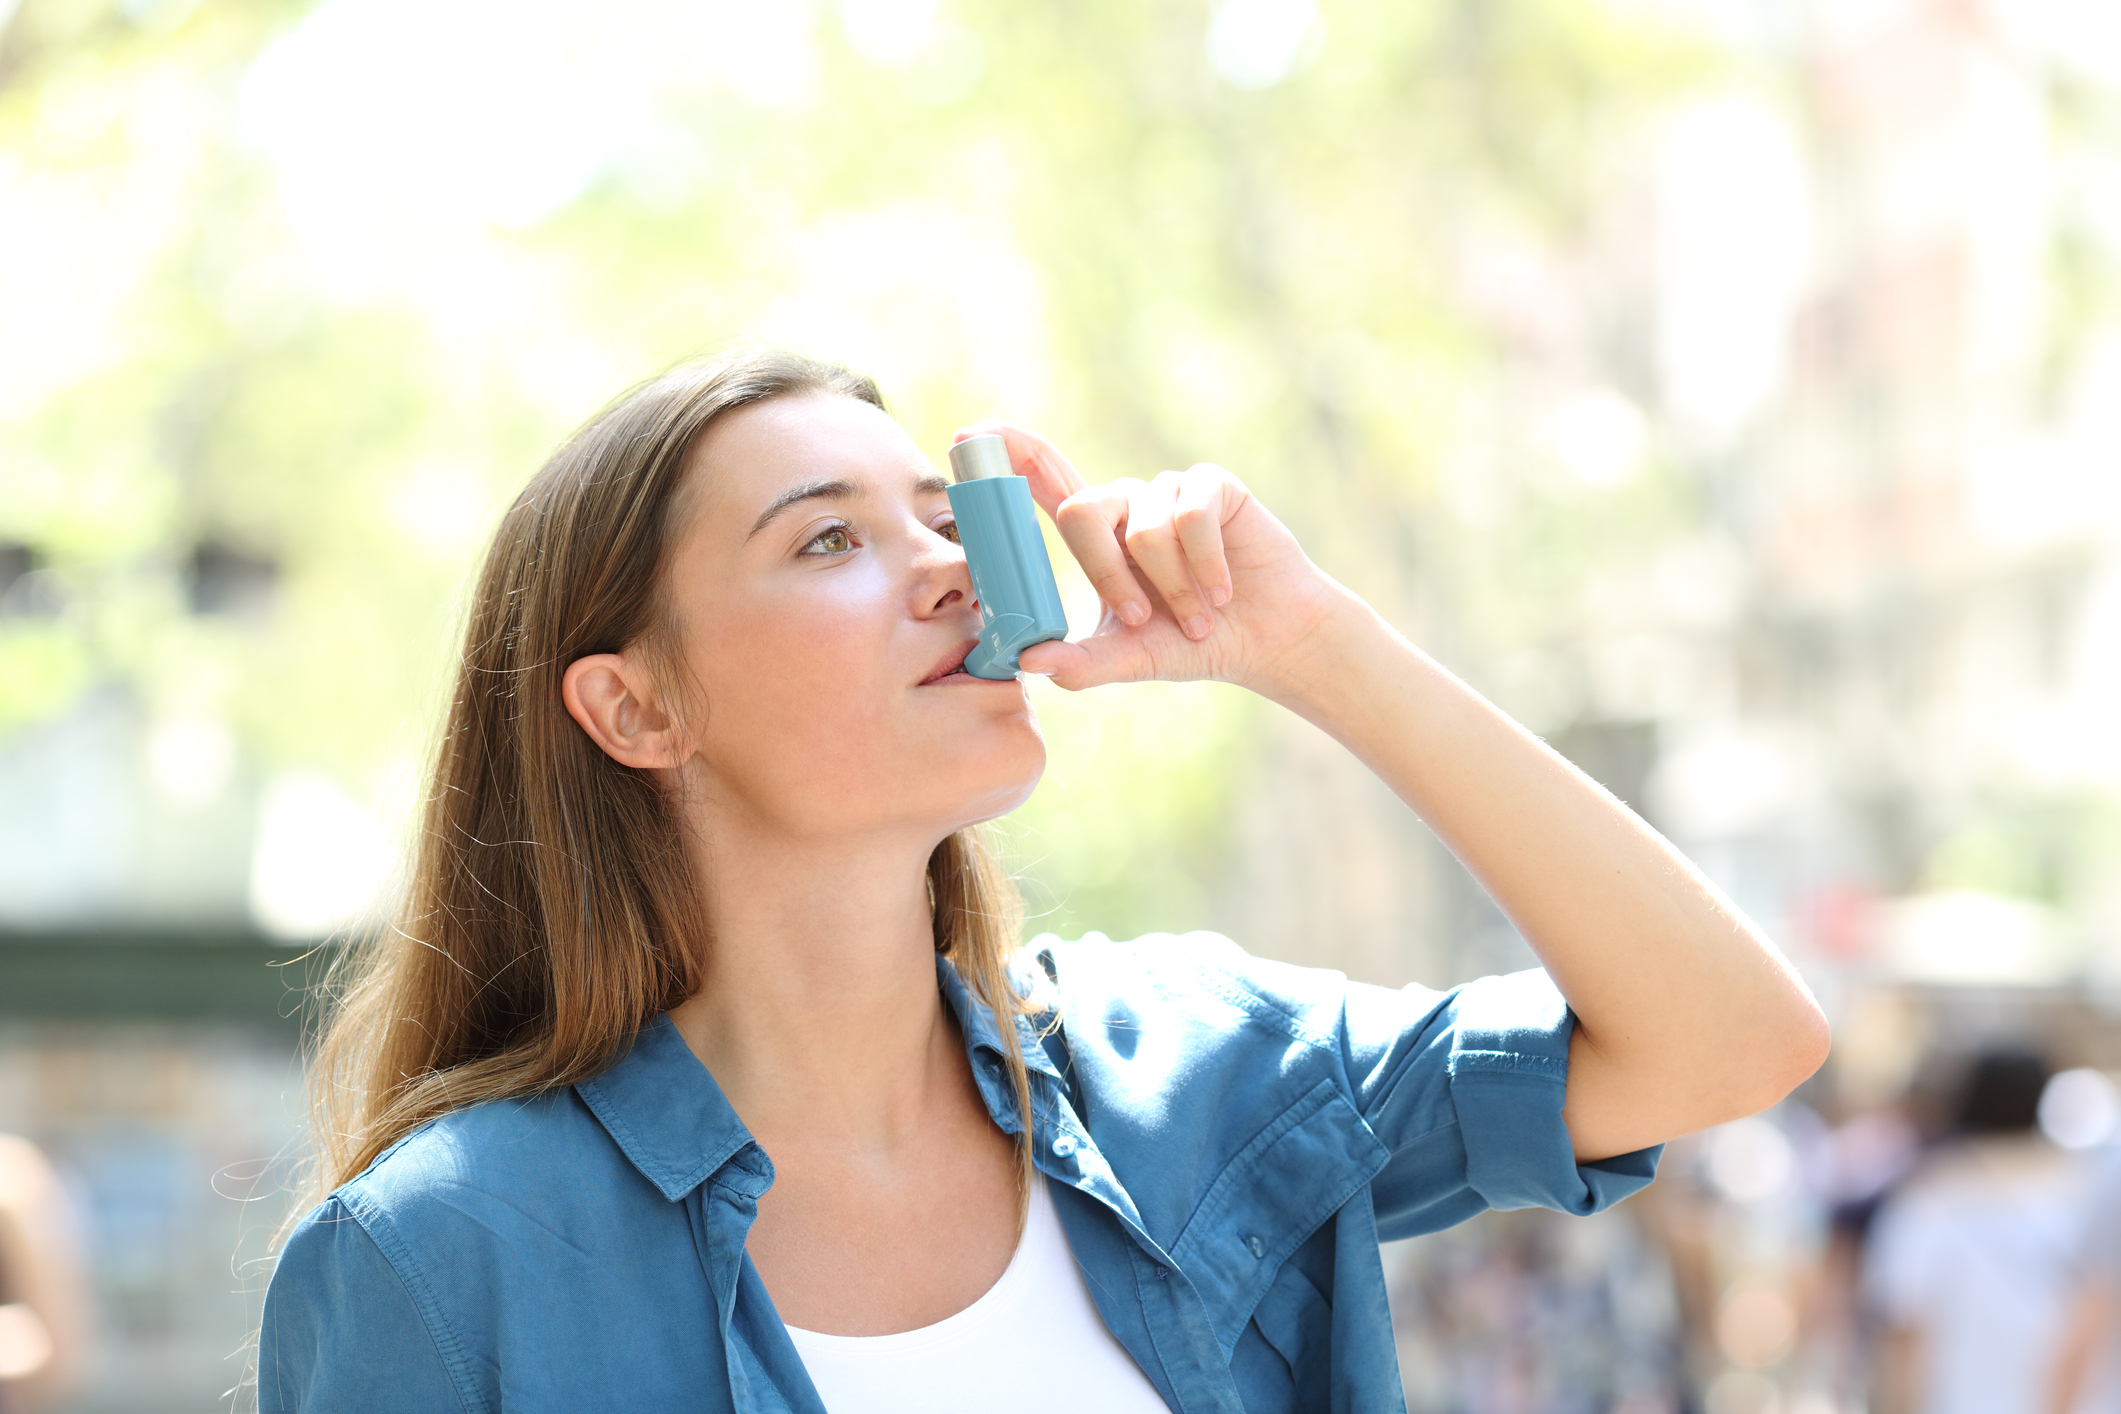 Why the connection between asthma and osteoporosis?